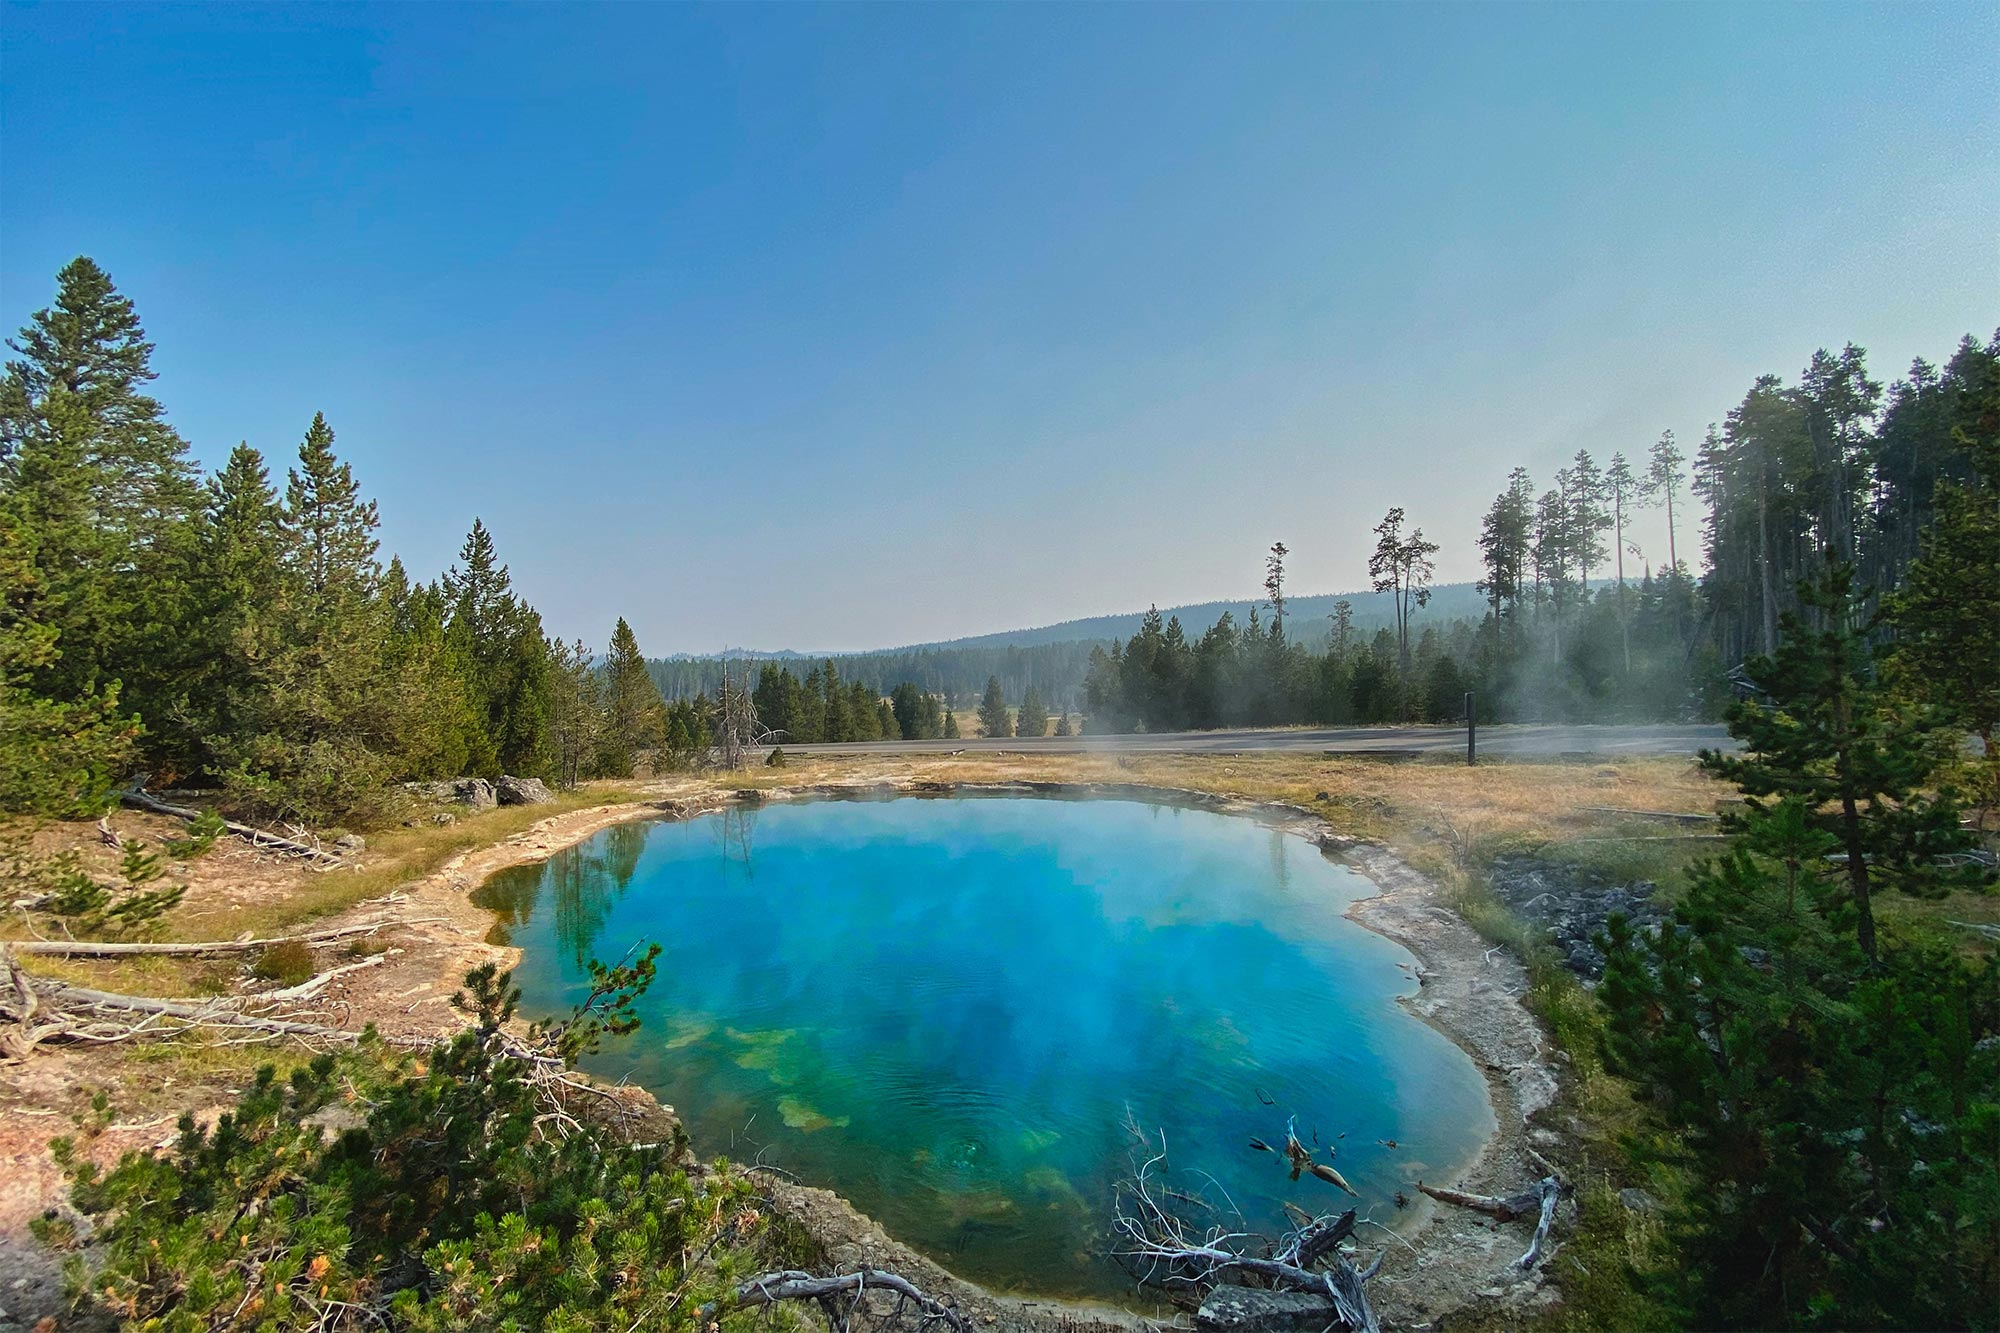 US National Parks: Where to Go & What to Do